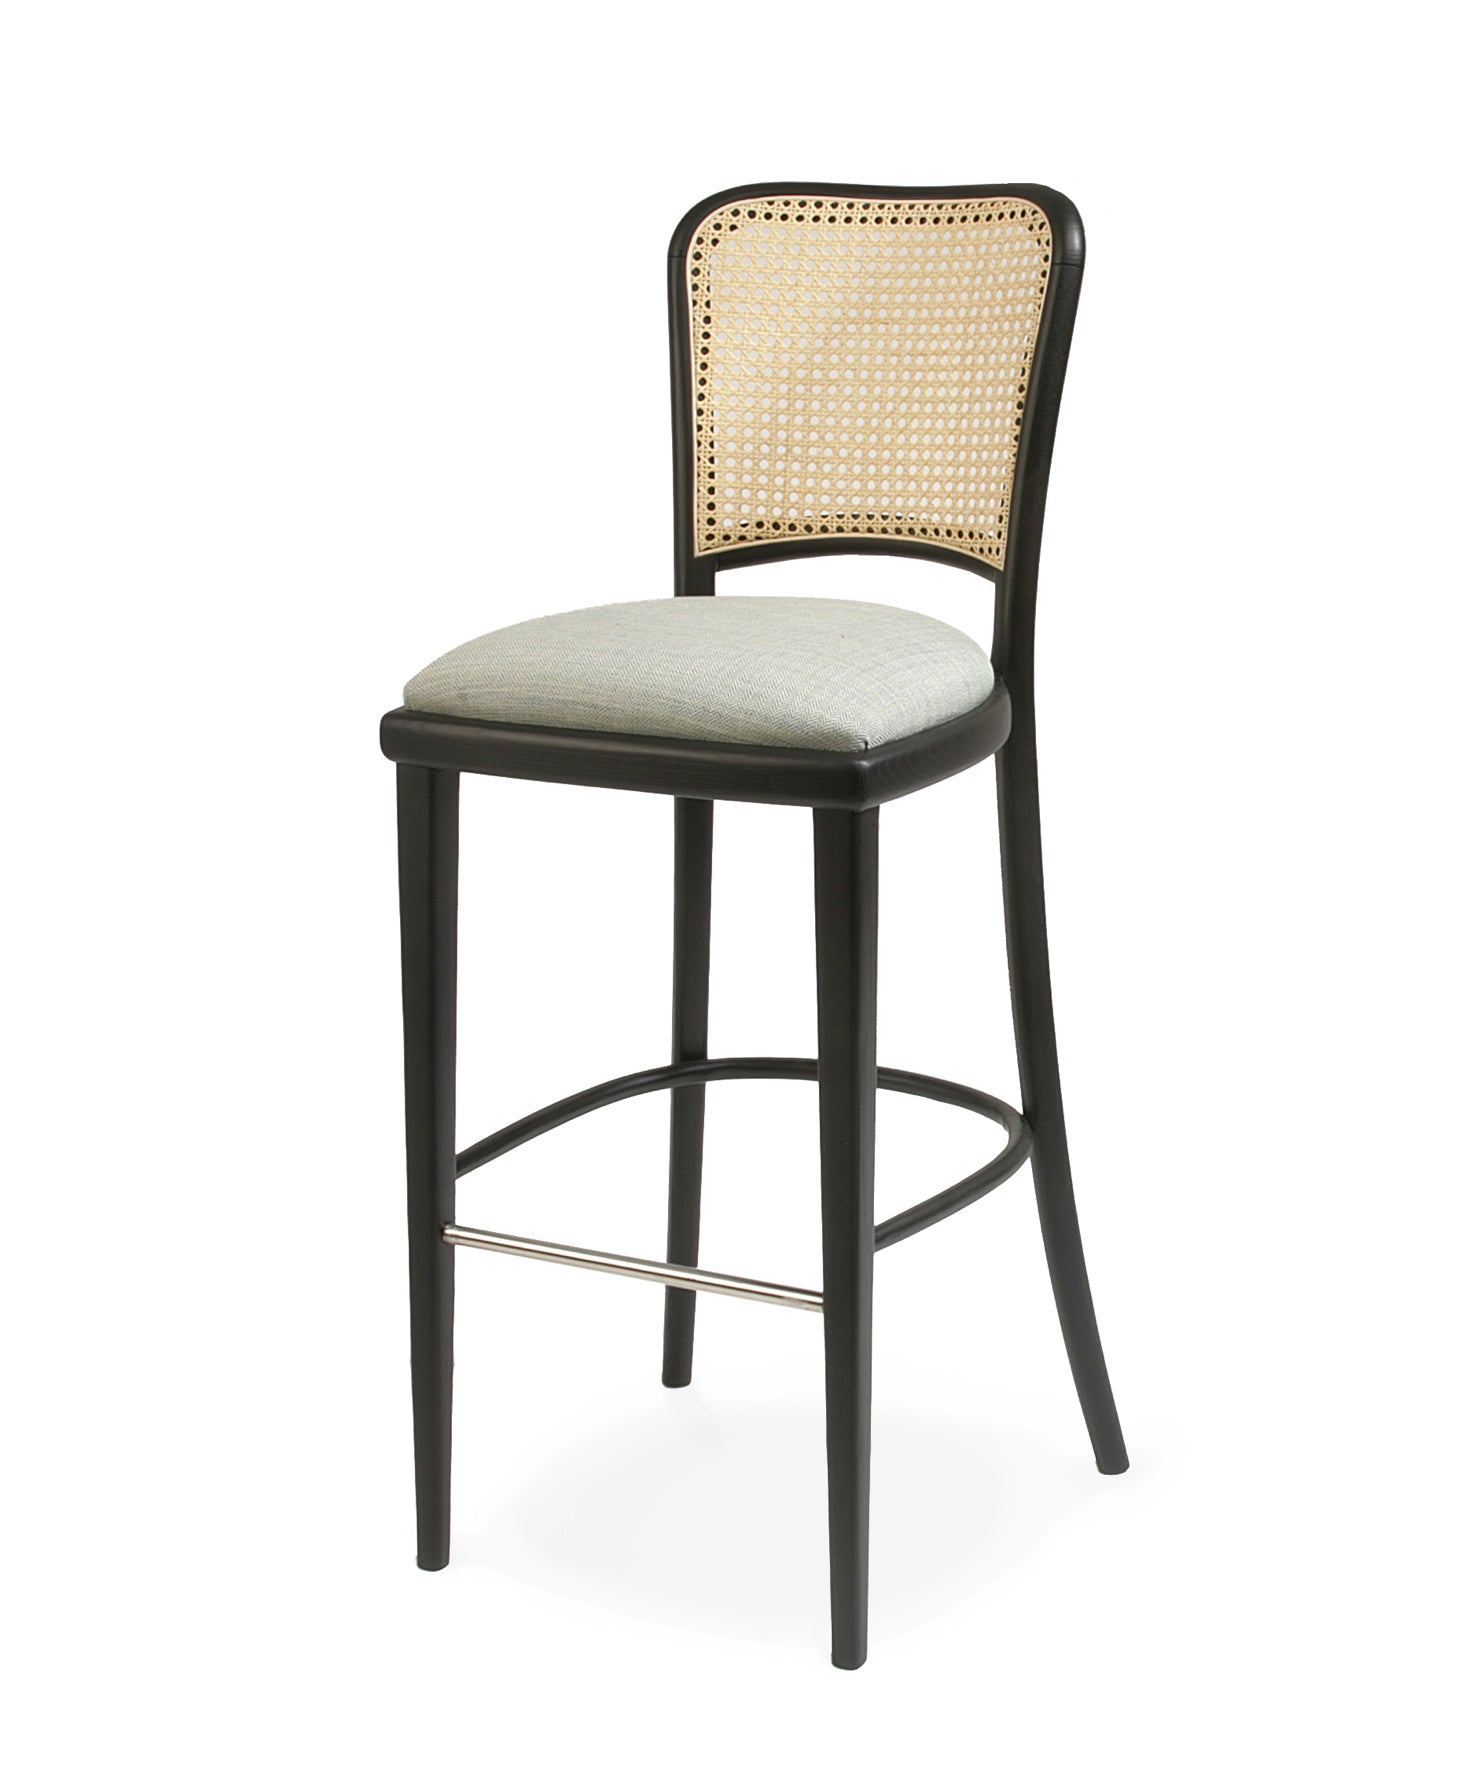 Elektra High Stool-X8-Contract Furniture Store